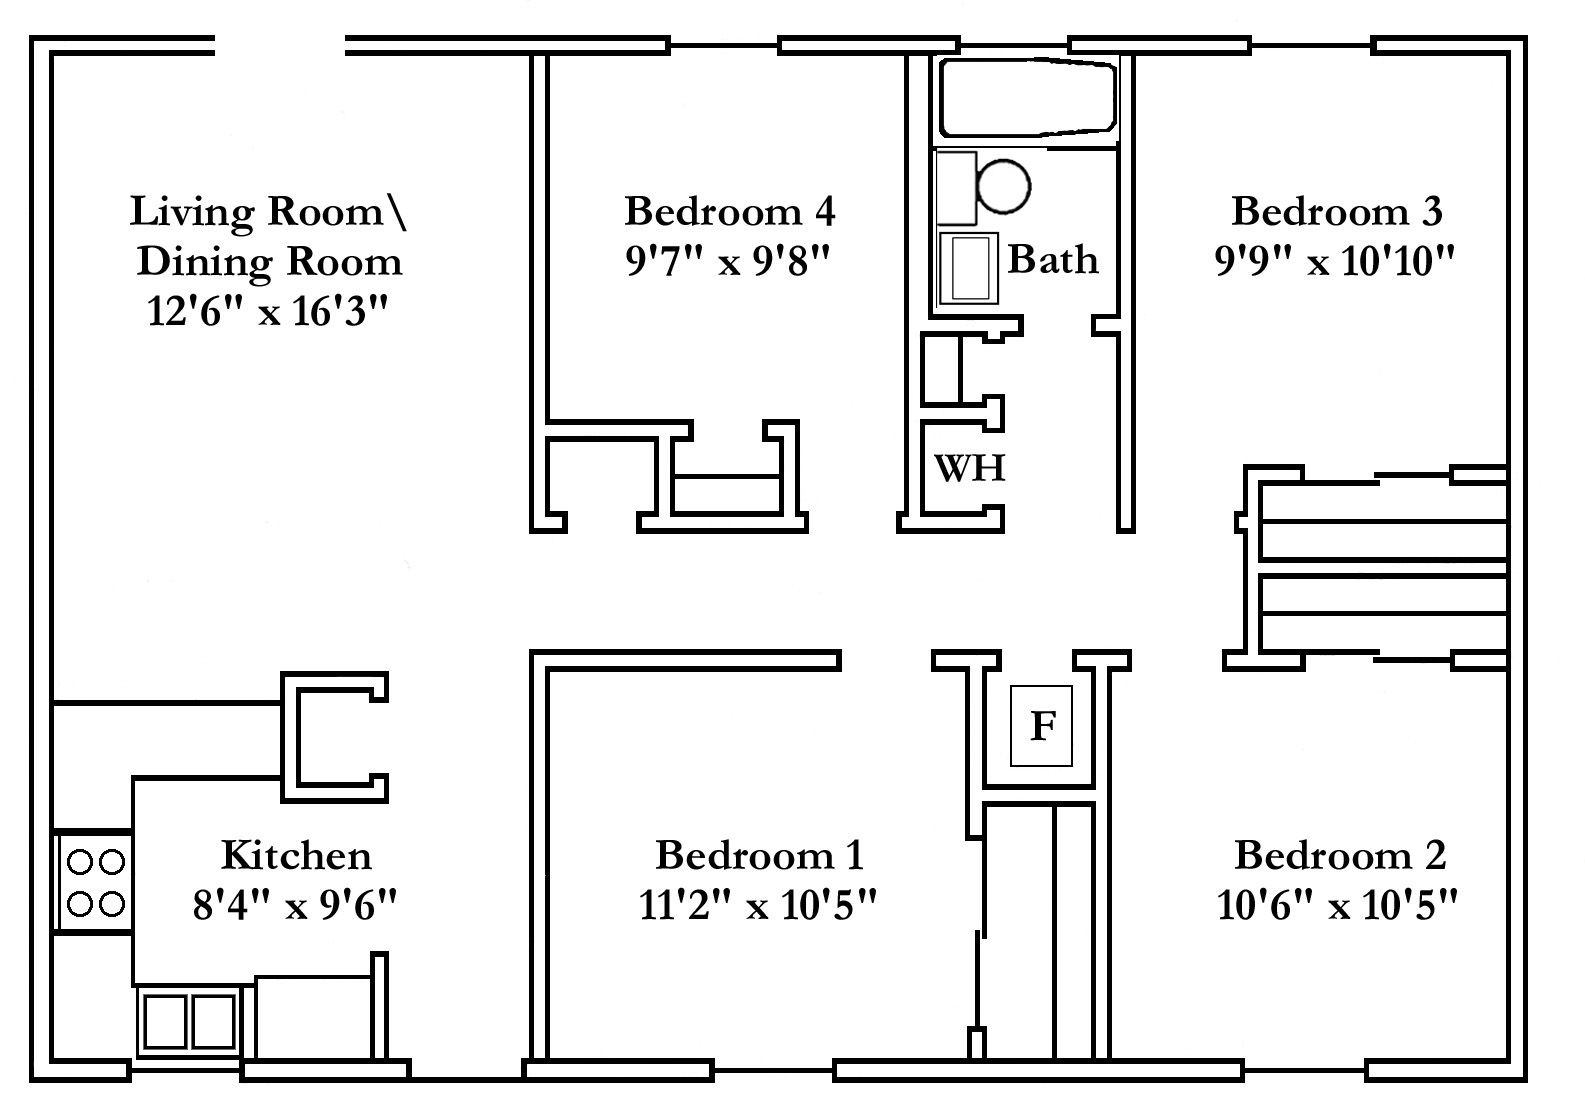 Small 4 Bedroom House Plans Free Typical Floor Plans Powering Part 95